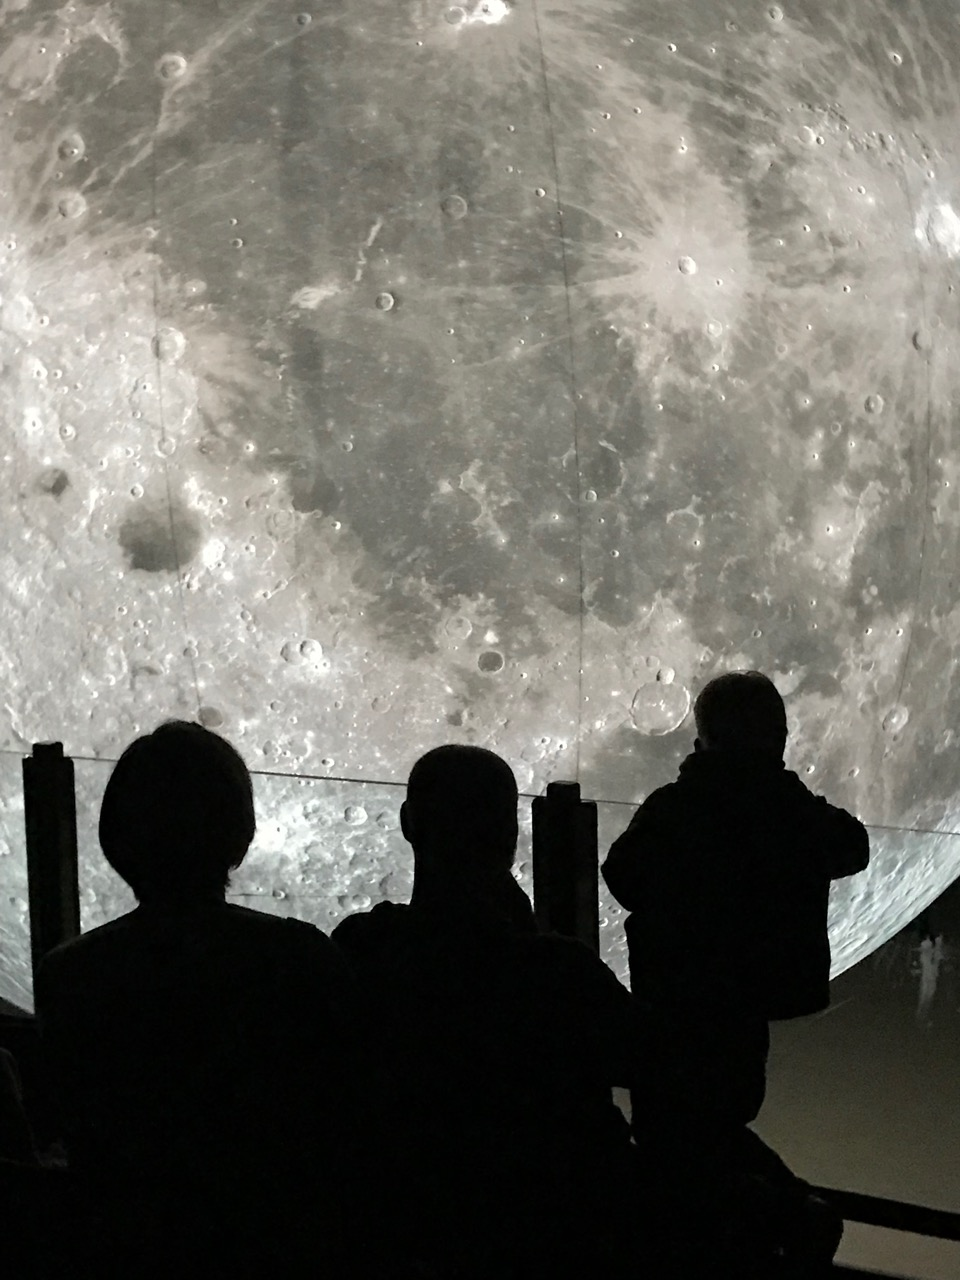 The moon was in Stromness for the science festival